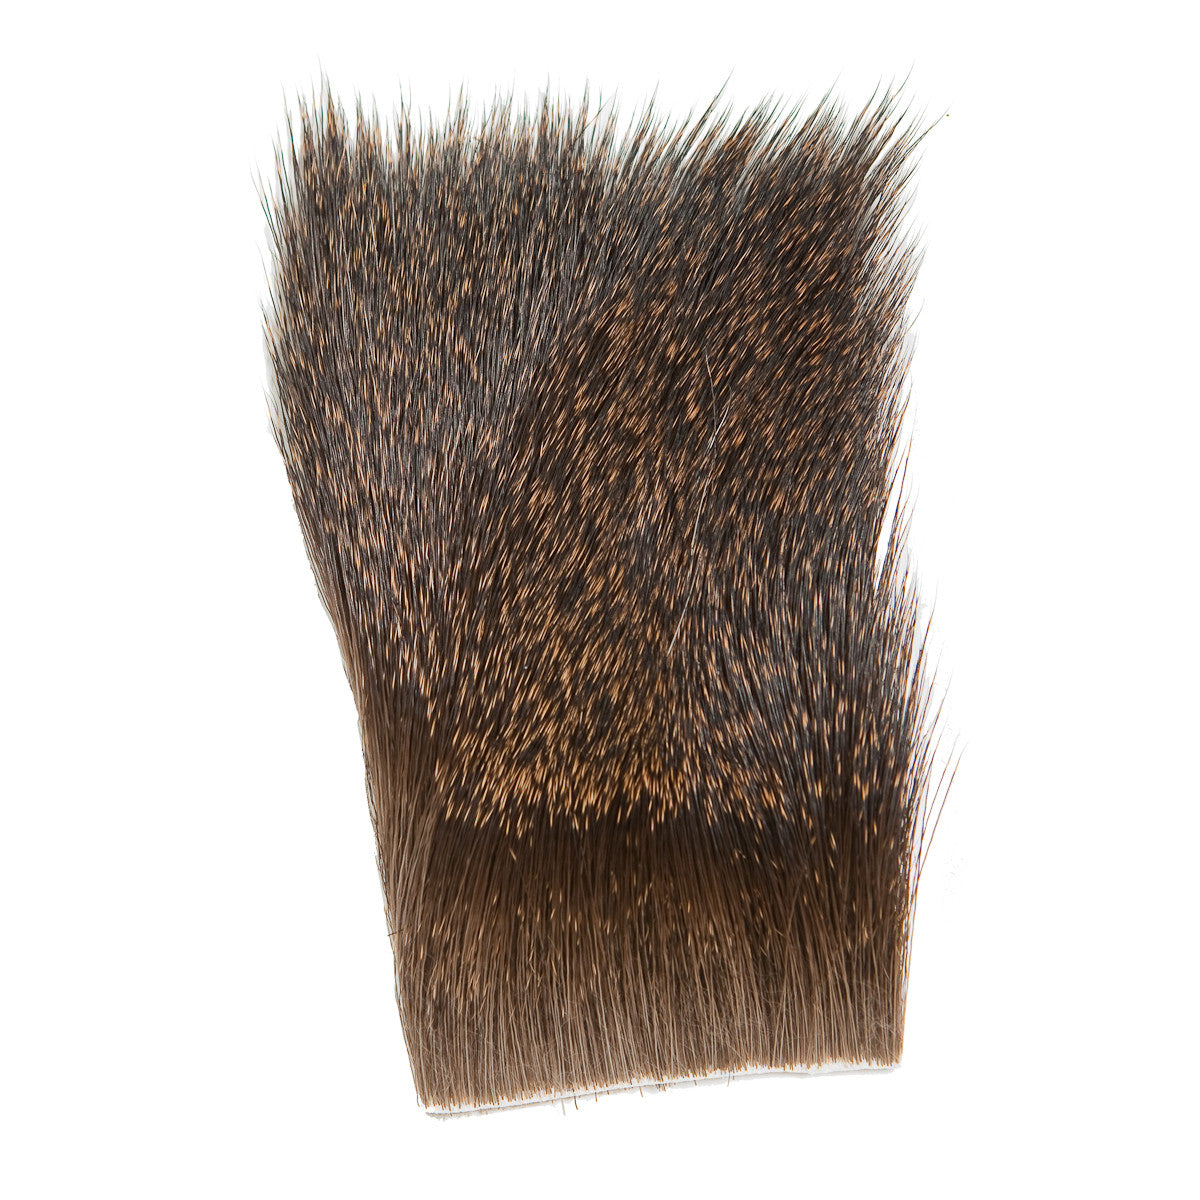 Coastal Blacktail Deer Body Hair